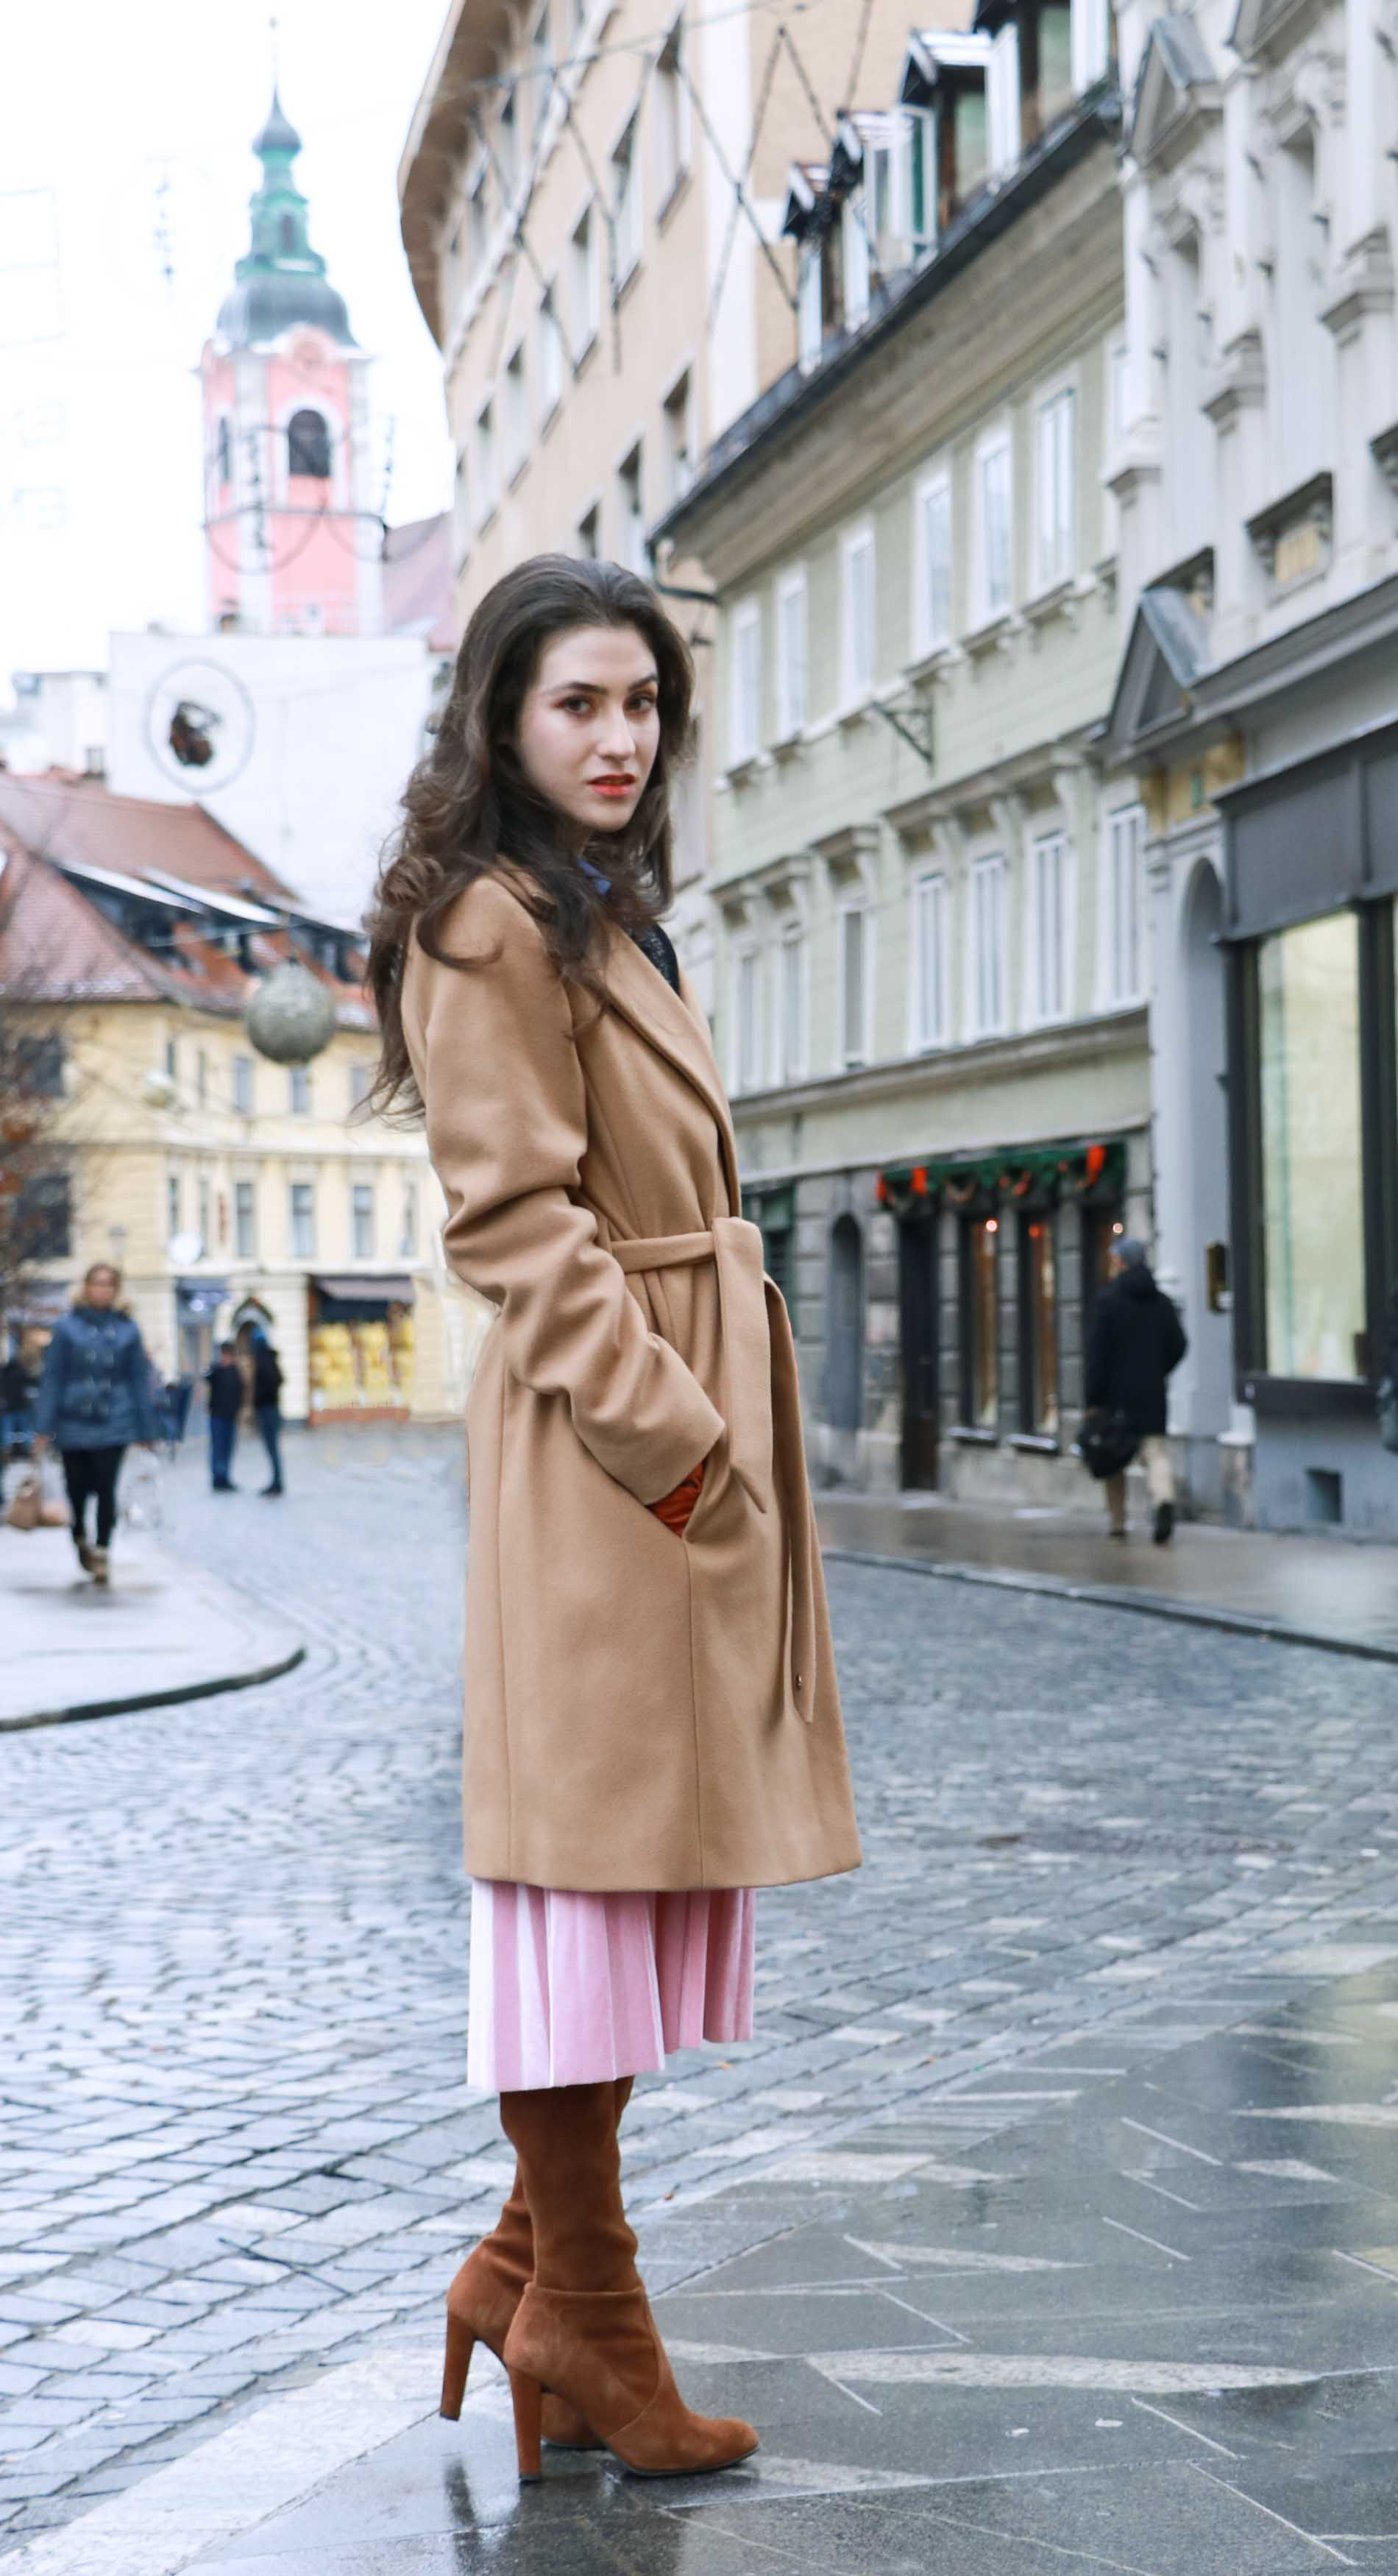 Fashion Blogger Veronika Lipar of Brunette from Wall Street wearing elegant winter outfit, ESCADA wrap camel coat, pink velvet midi pleated skirt, brown Stuart Weitzman Highland OTK boots, black top handle bag, leather gloves this Christmas